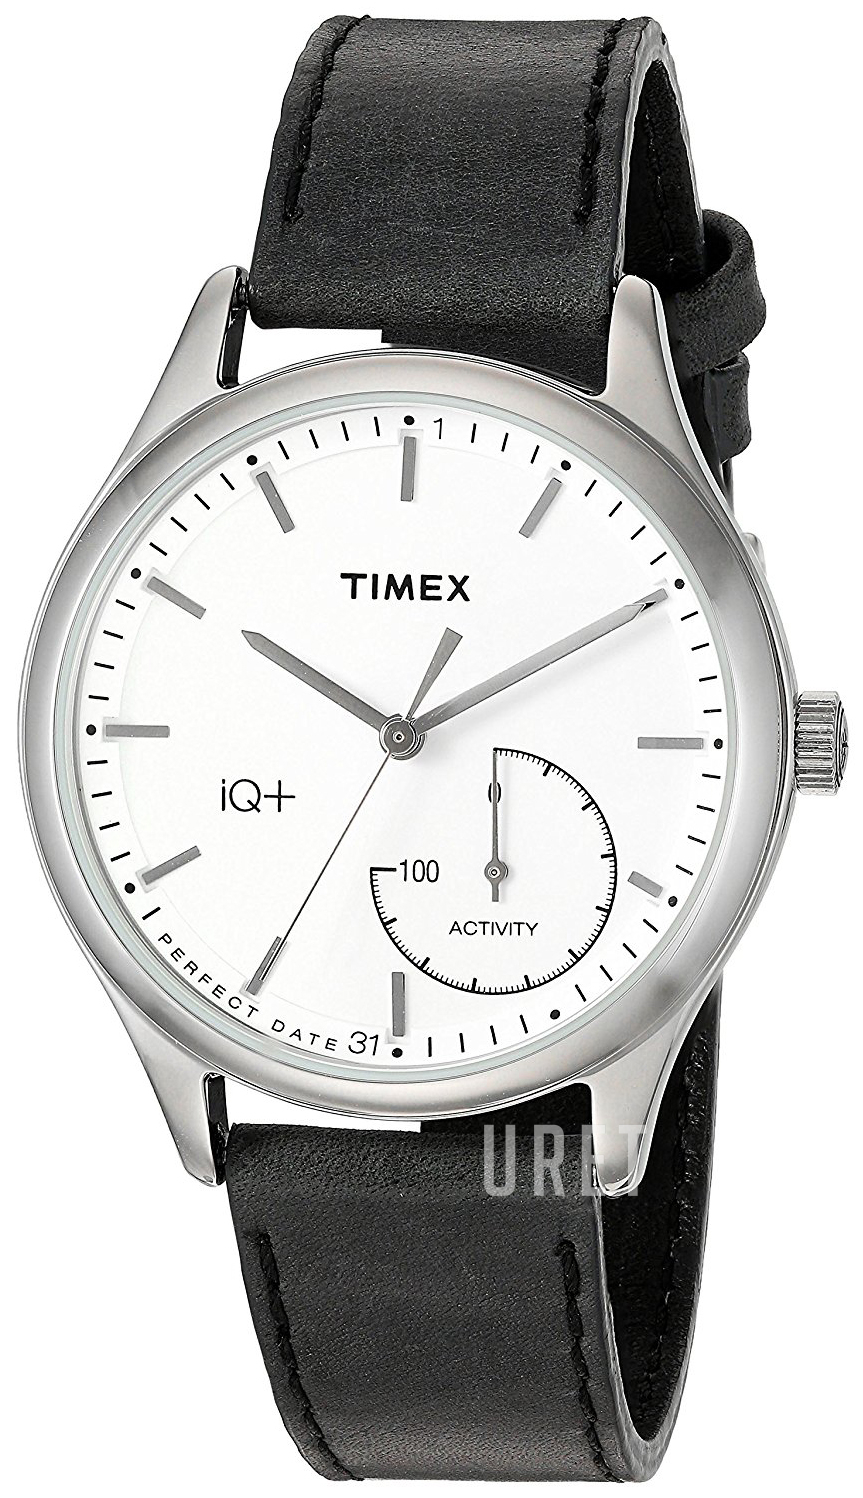 Dating en Timex klocka